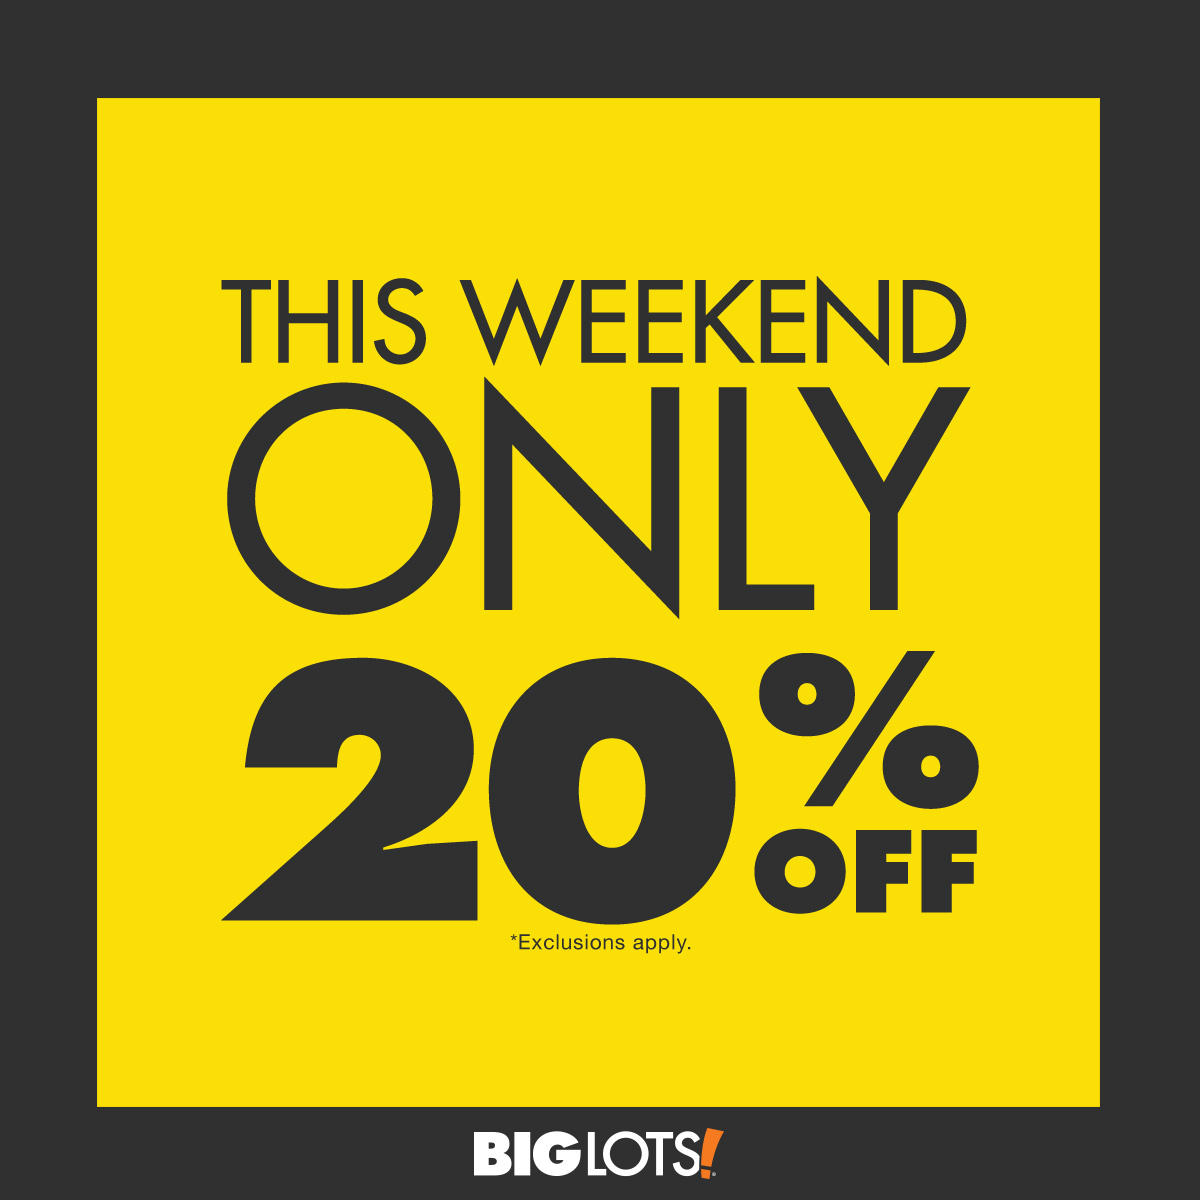 Weekend Discount: Big Lots 20% Off Sale, Friends And Family Weekend Coupon